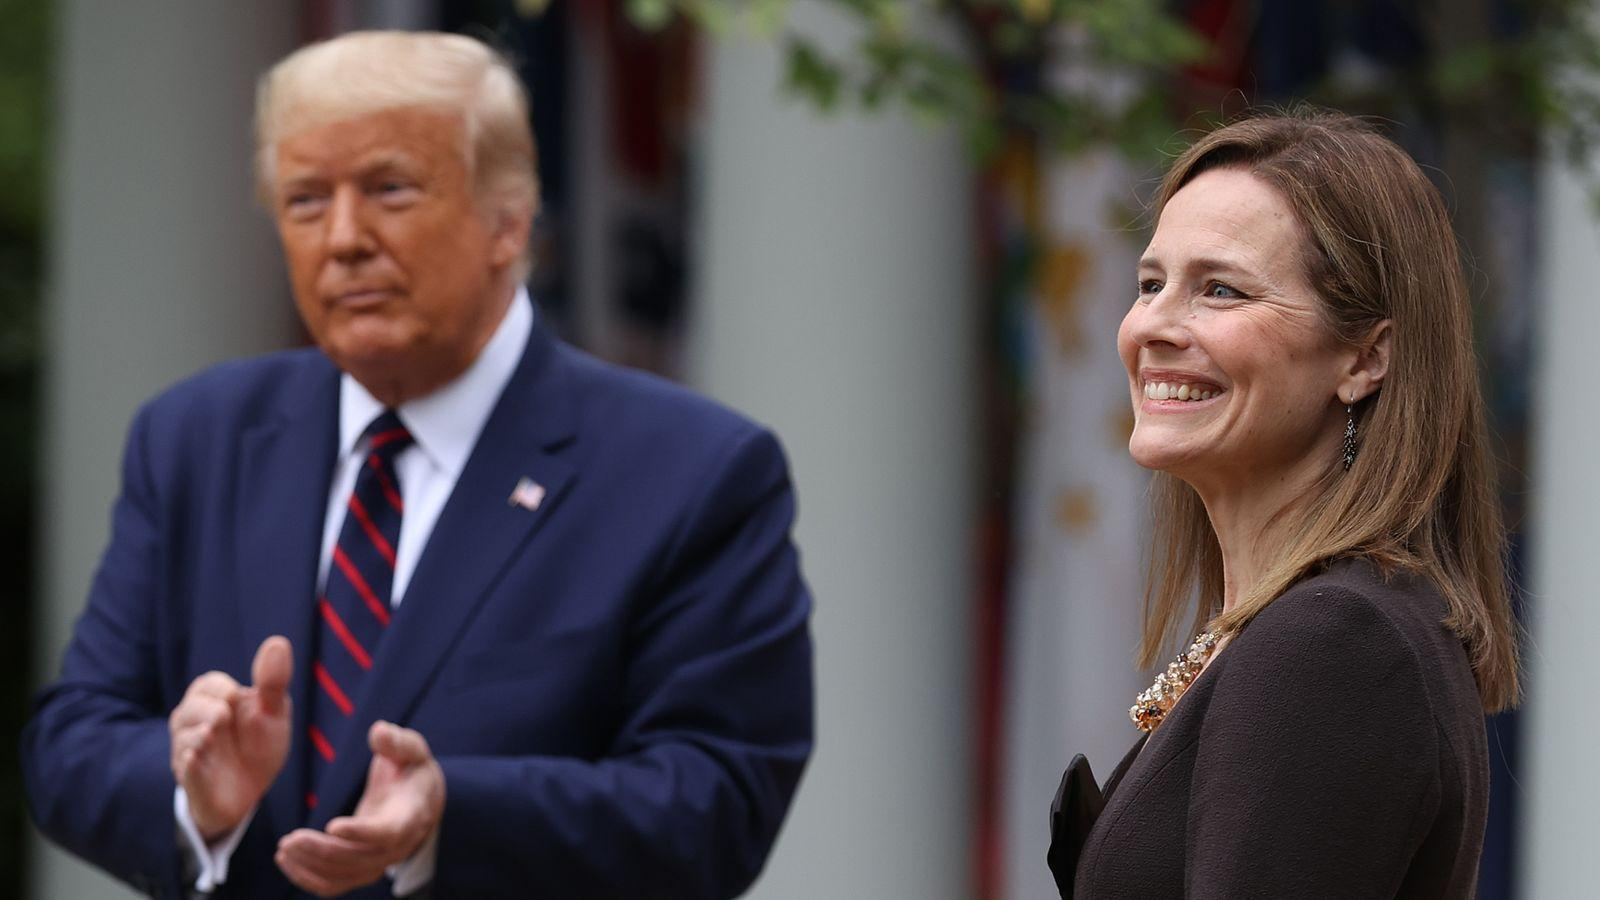 Amy Coney Barrett announced by Donald Trump to replace ...